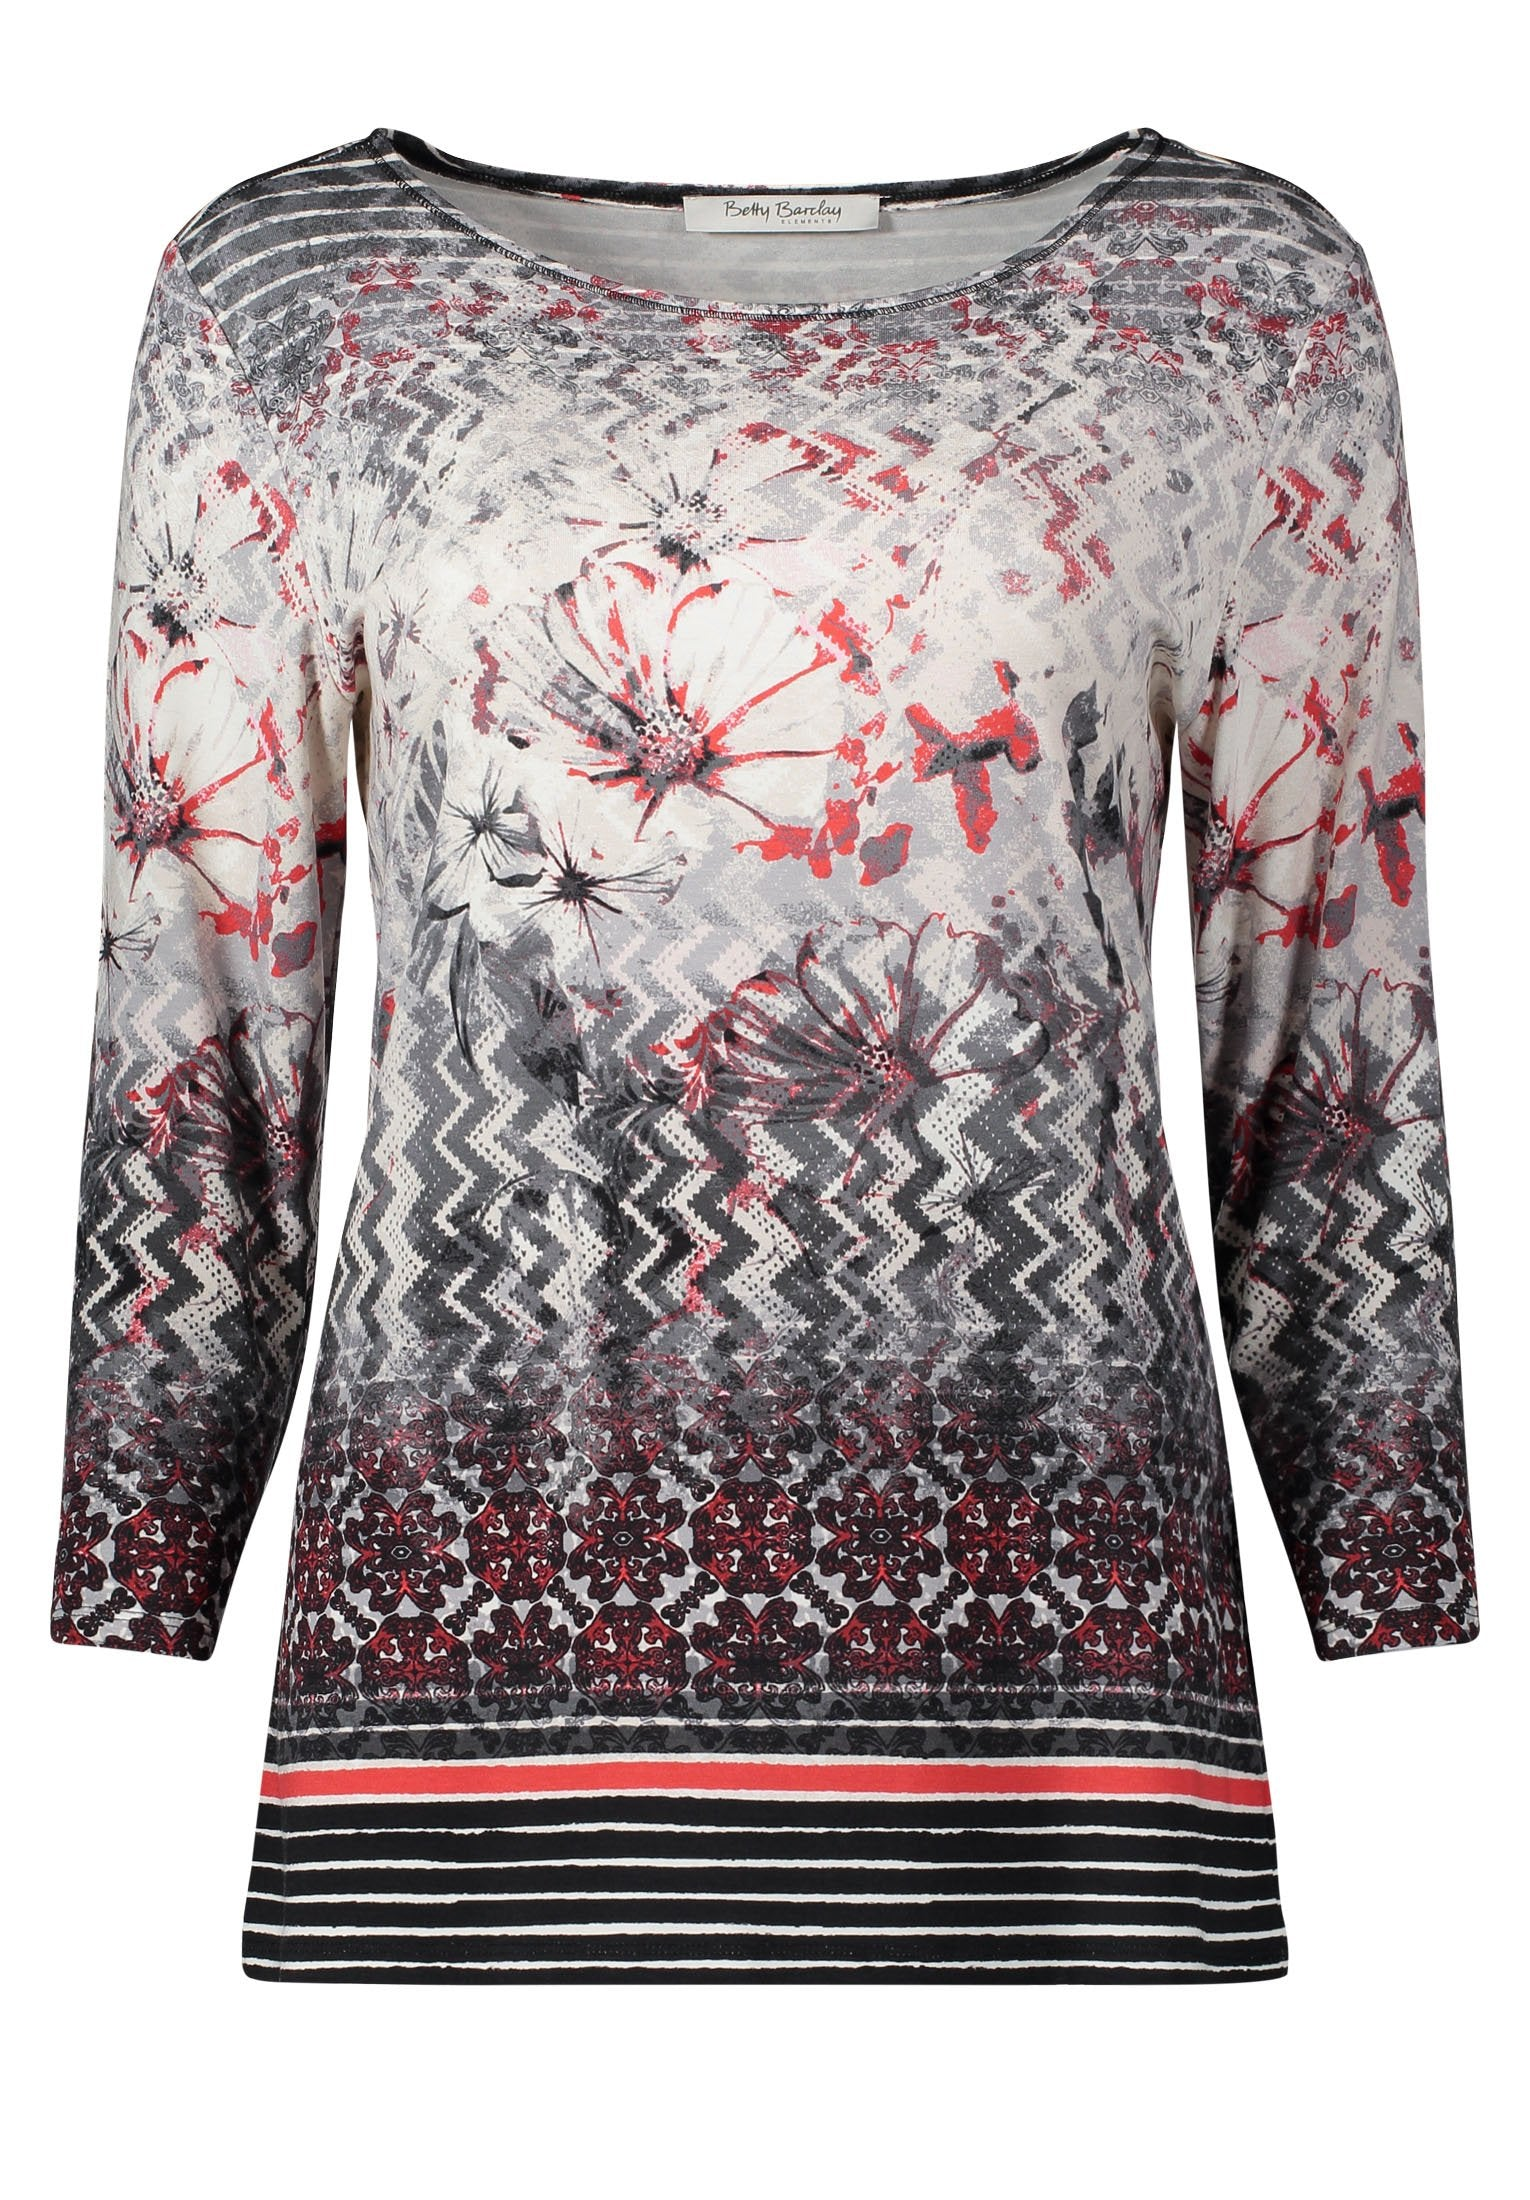 Betty Barclay Cream/Red Printed ¾ Sleeve Top